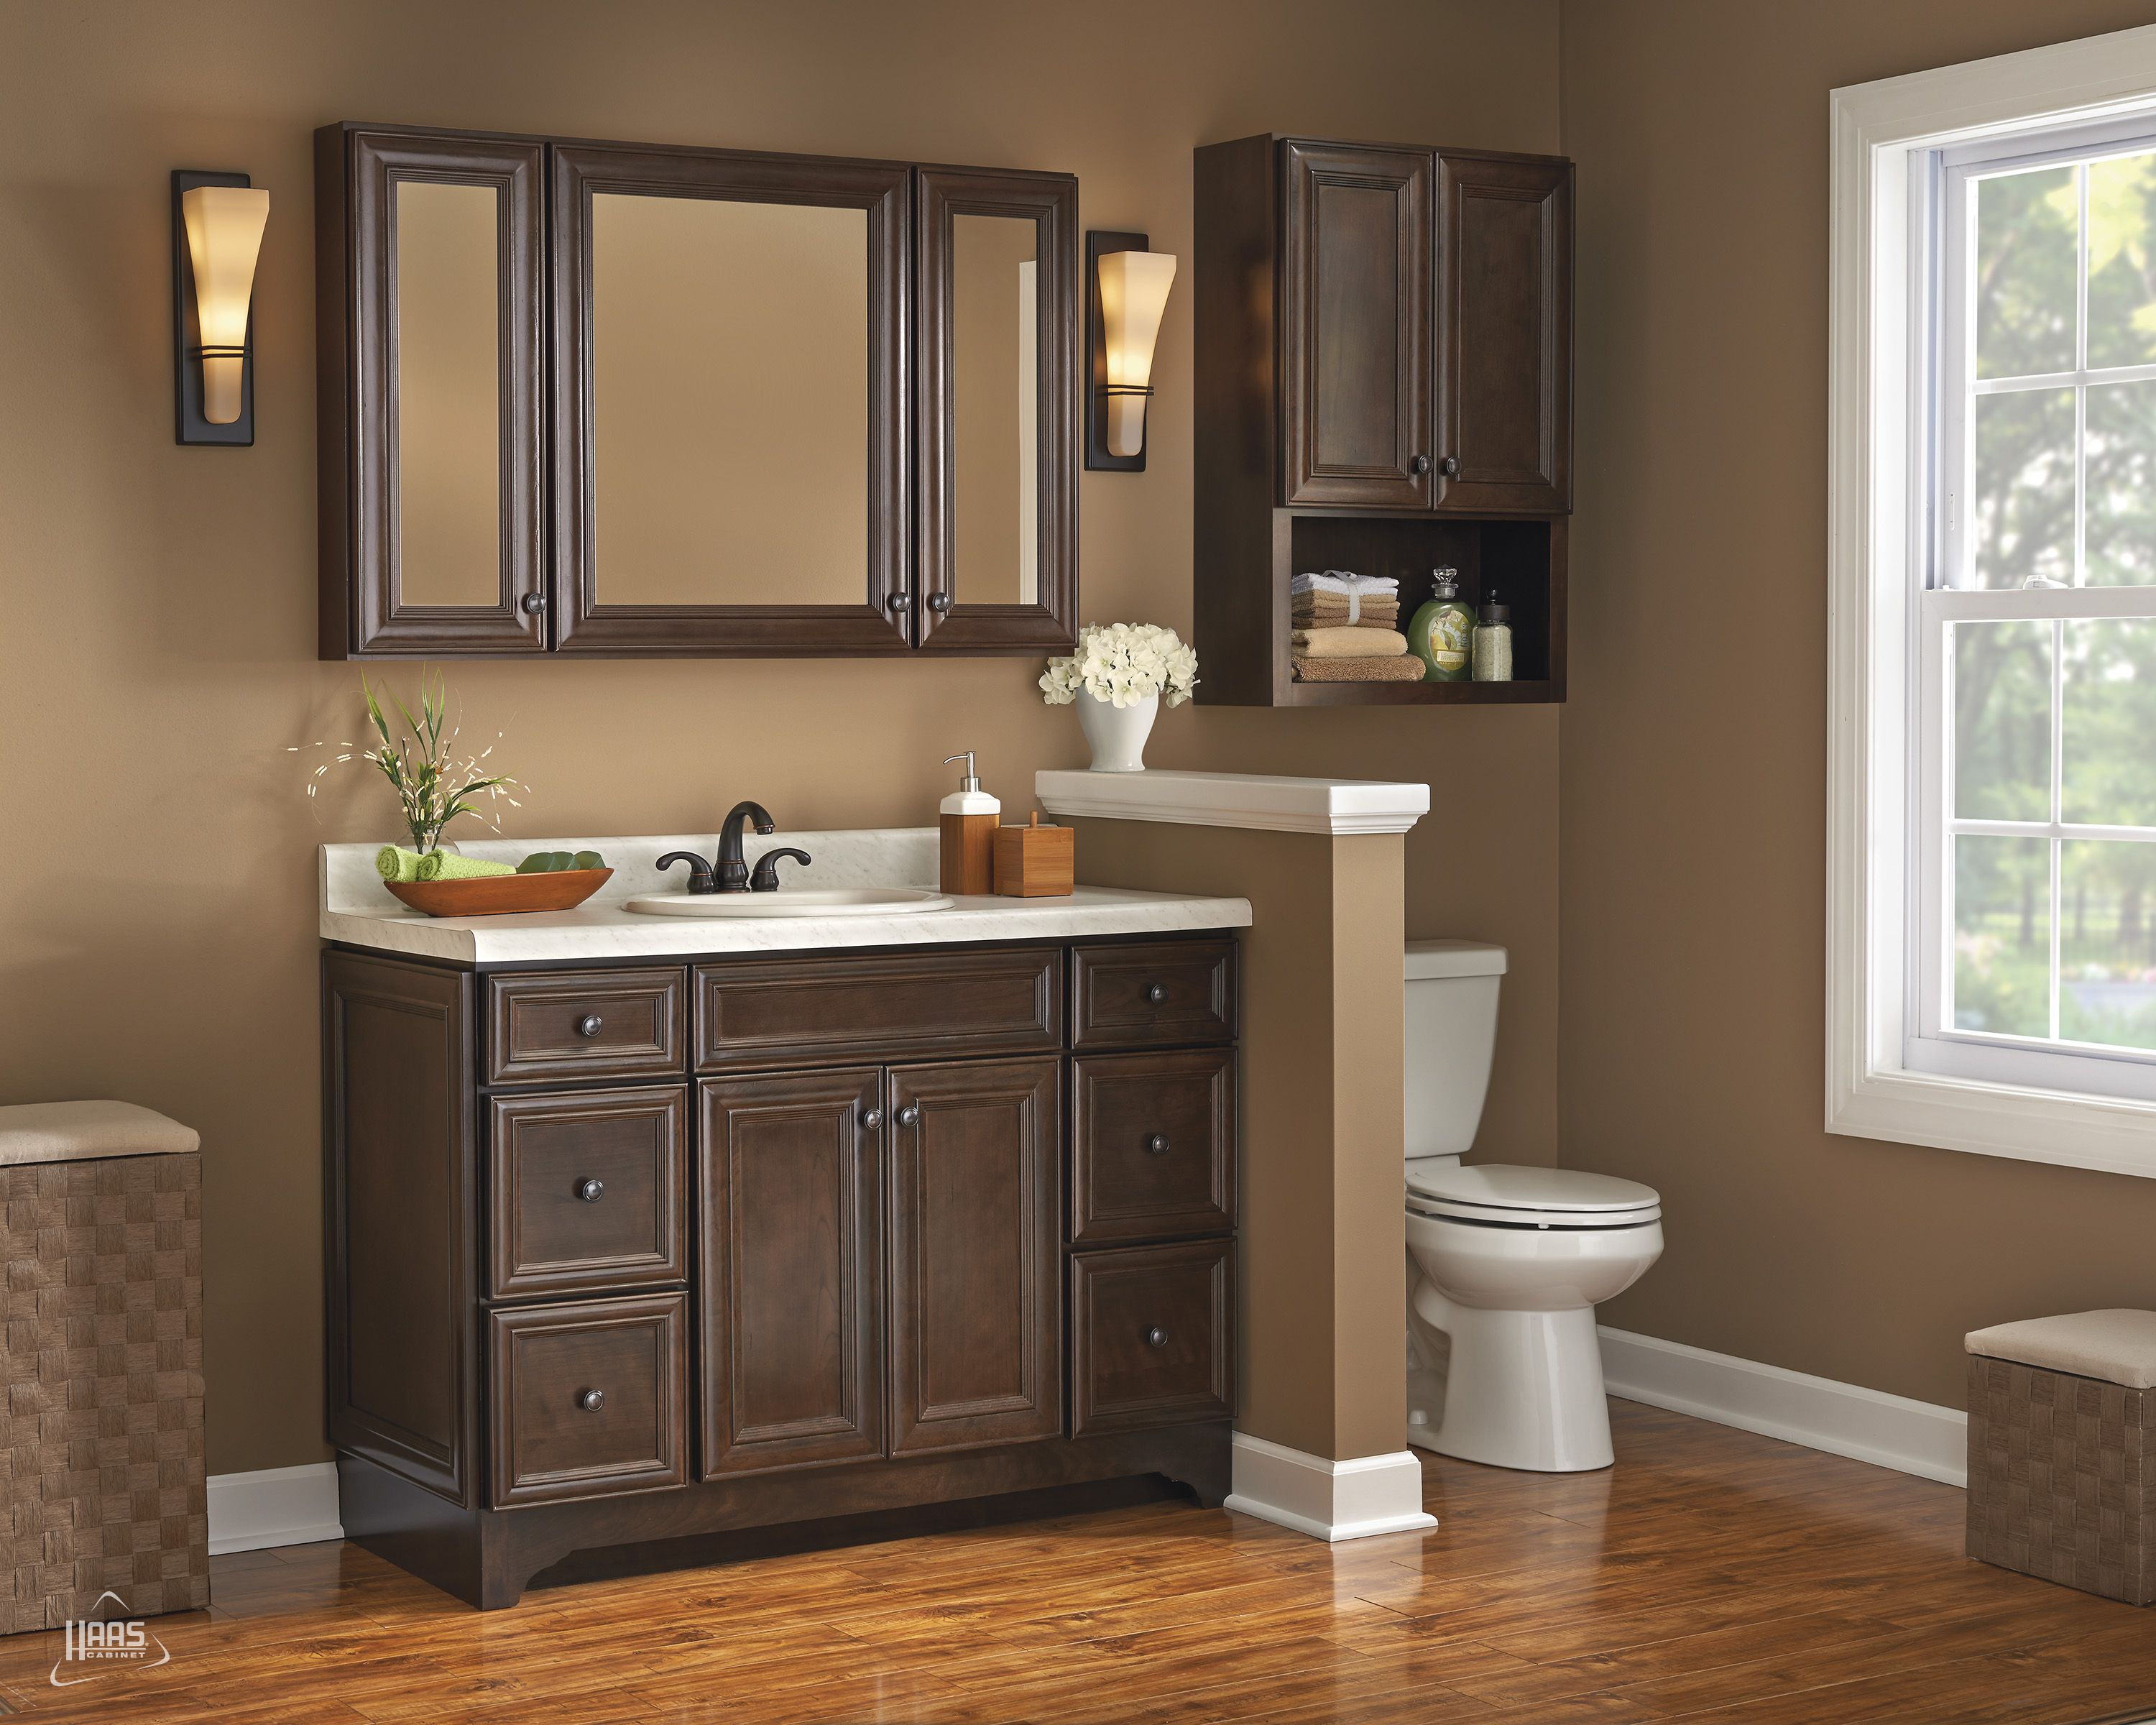 Haas Cabinet Door Style Lexington V shown in Java finish